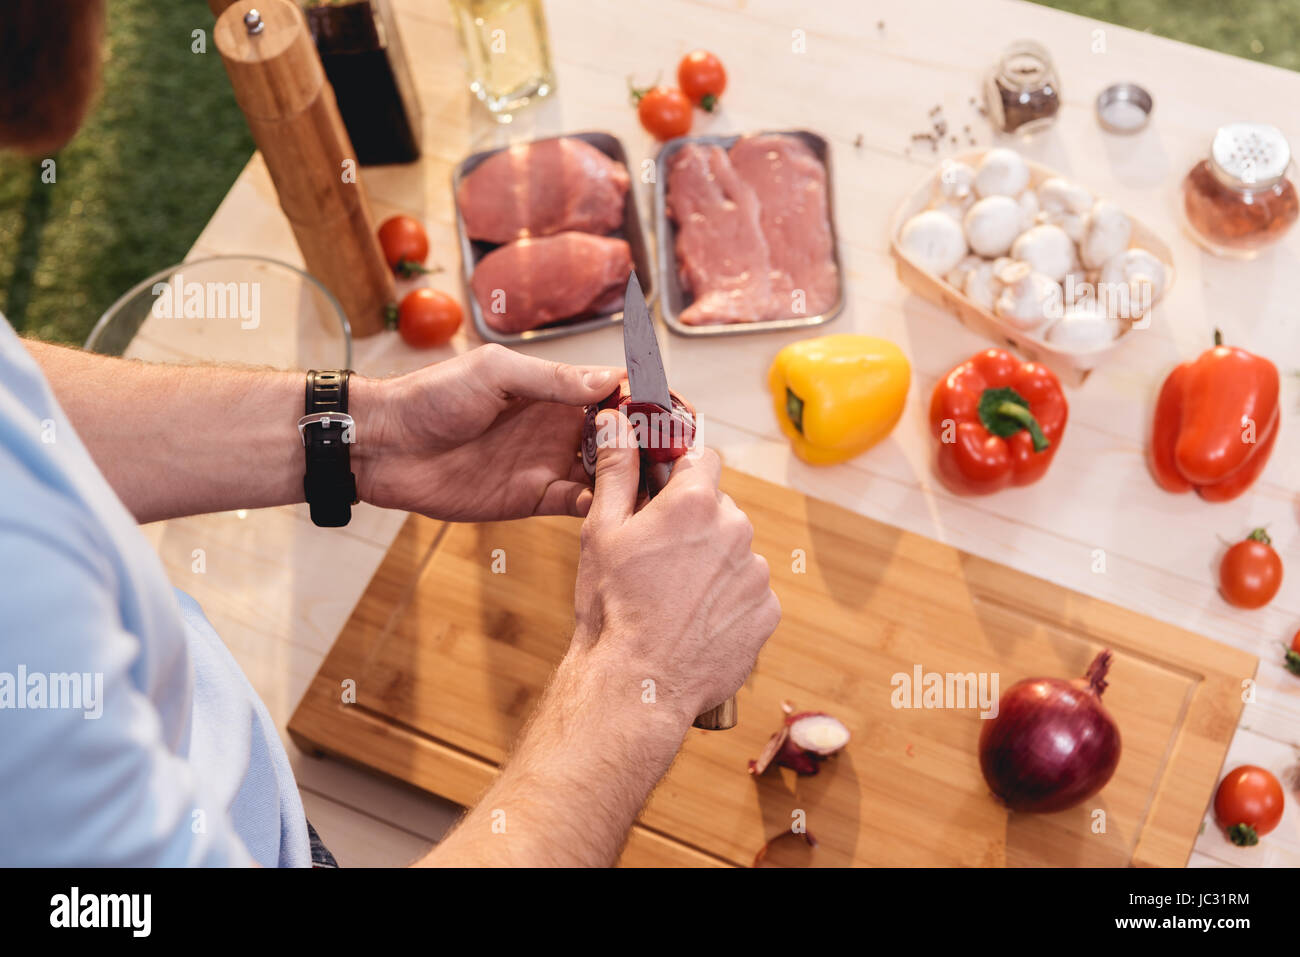 Cropped shot of man cutting fresh onion at wooden cutting board for barbecue - Stock Image